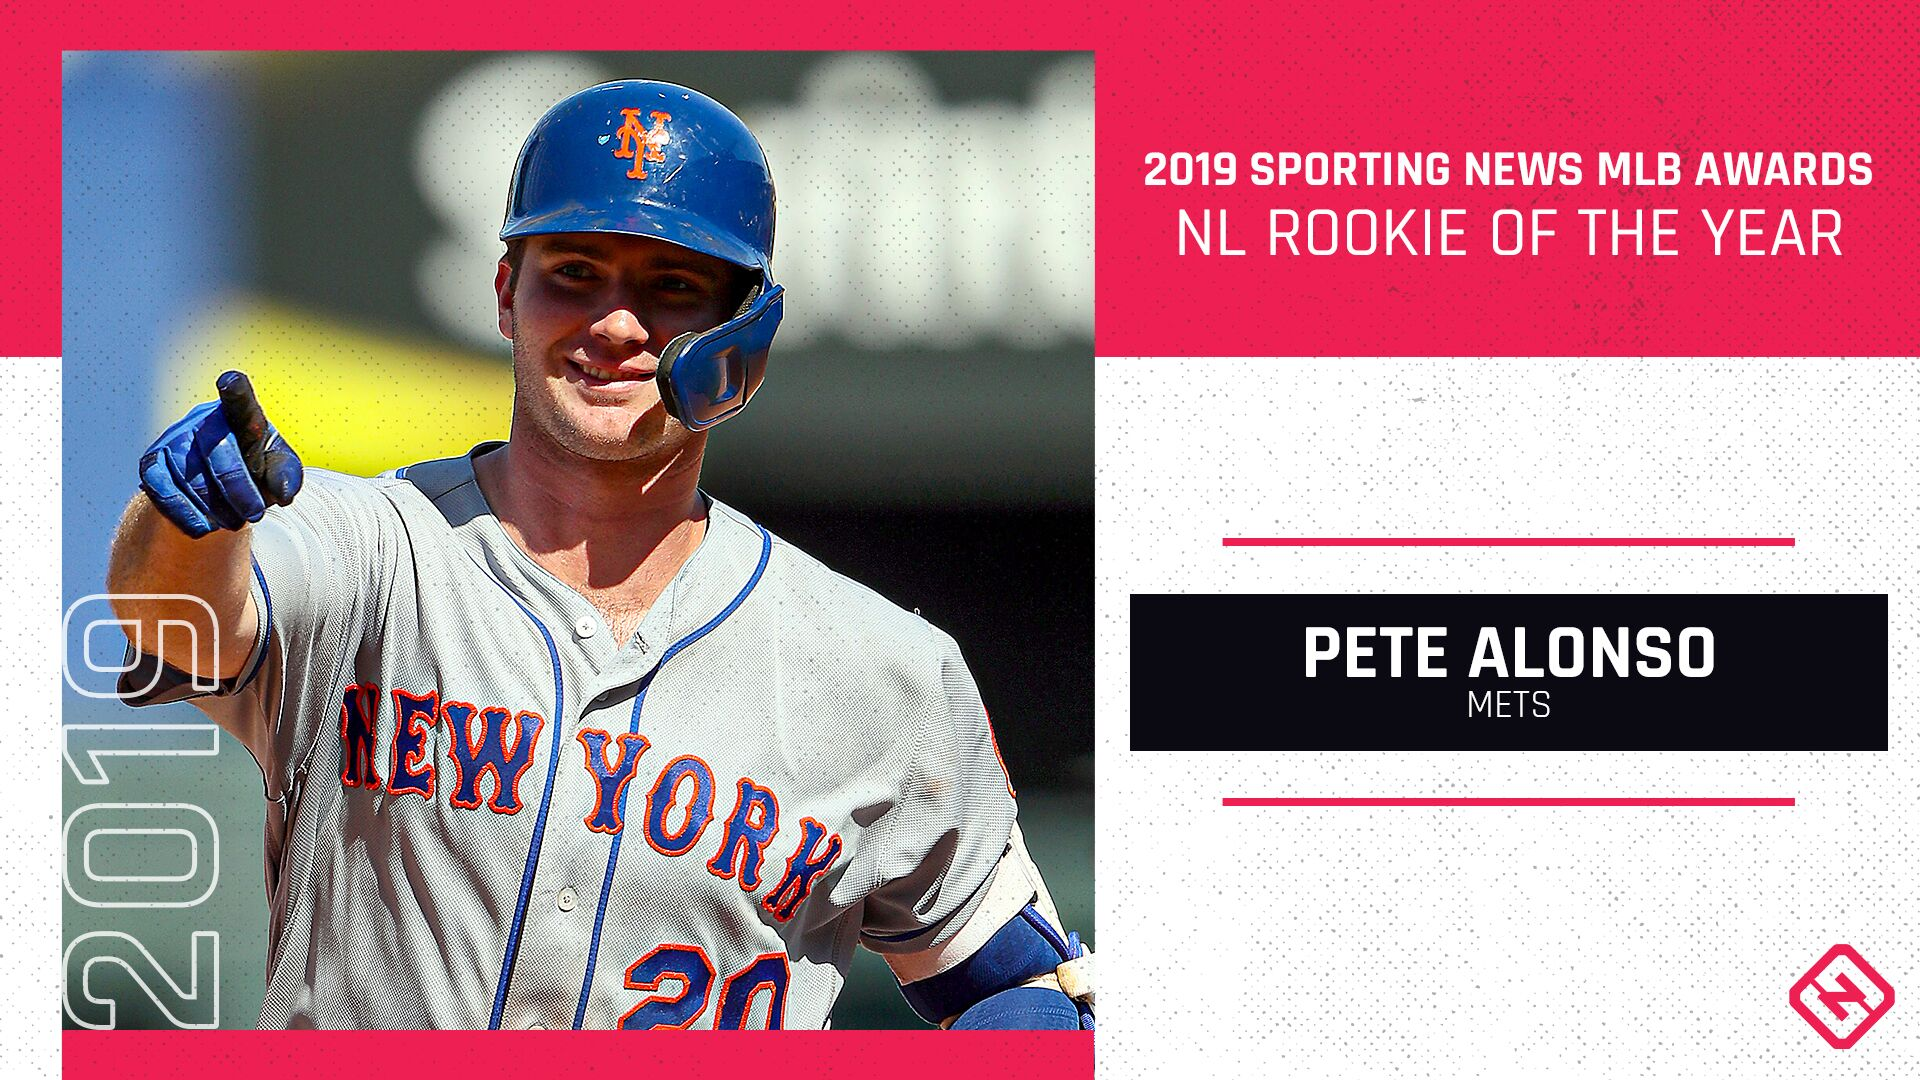 Mets' Pete Alonso voted 2019 Sporting News NL Rookie of the Year